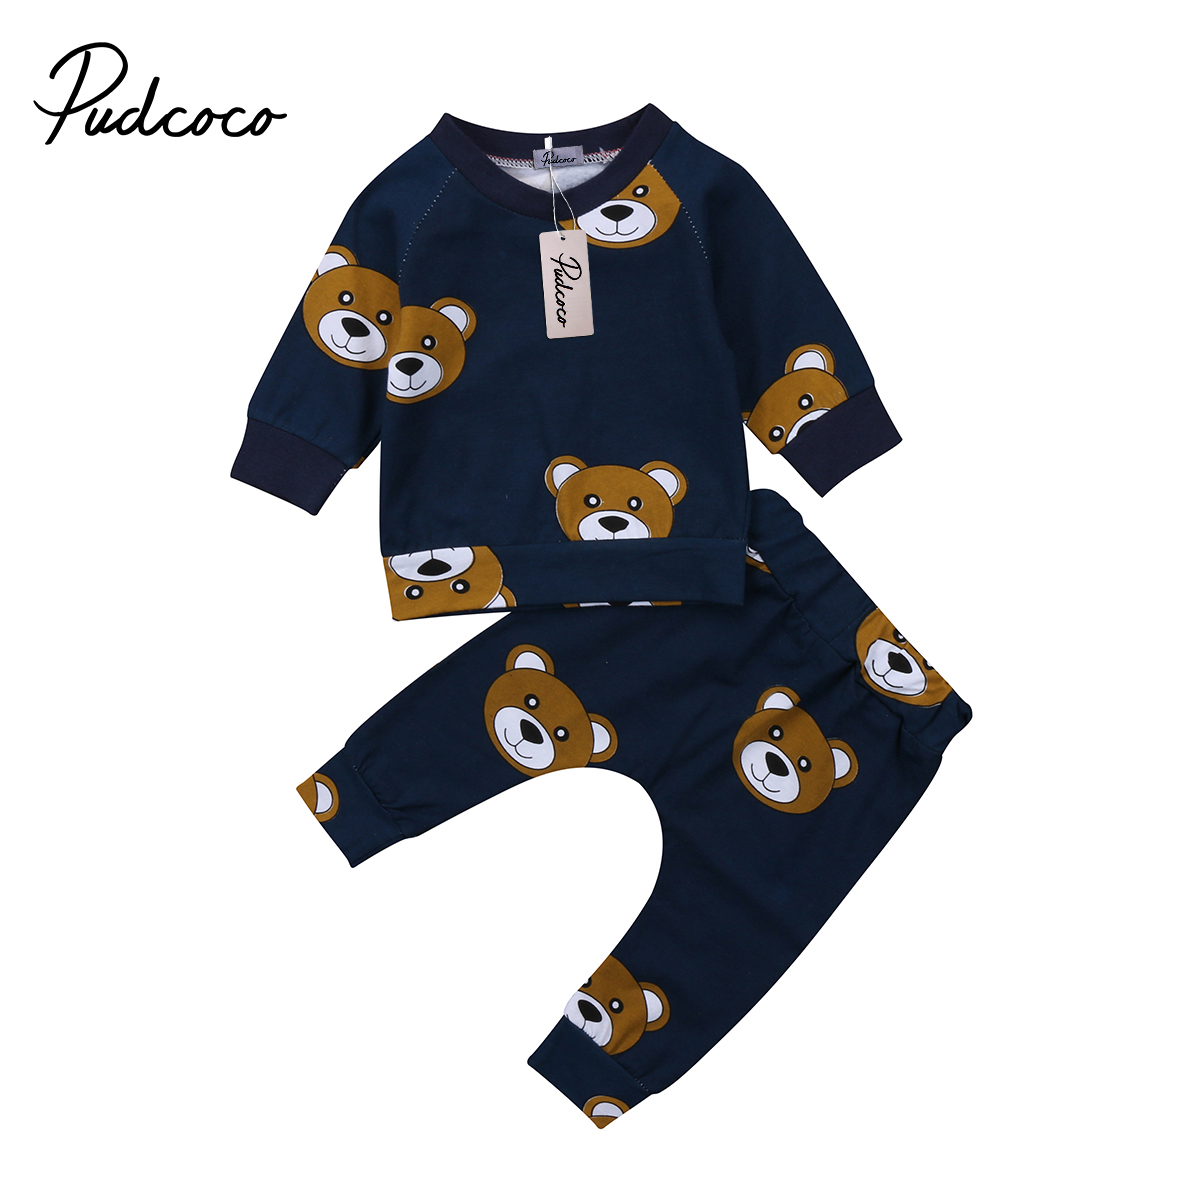 Cute Carton Bear <font><b>Baby</b></font> Boy <font><b>Girl</b></font> <font><b>clothes</b></font> set sweatshirt T-shirt Pants Legging Outfit for <font><b>Newborn</b></font> Infant Kid Clothing winter <font><b>Autumn</b></font> image